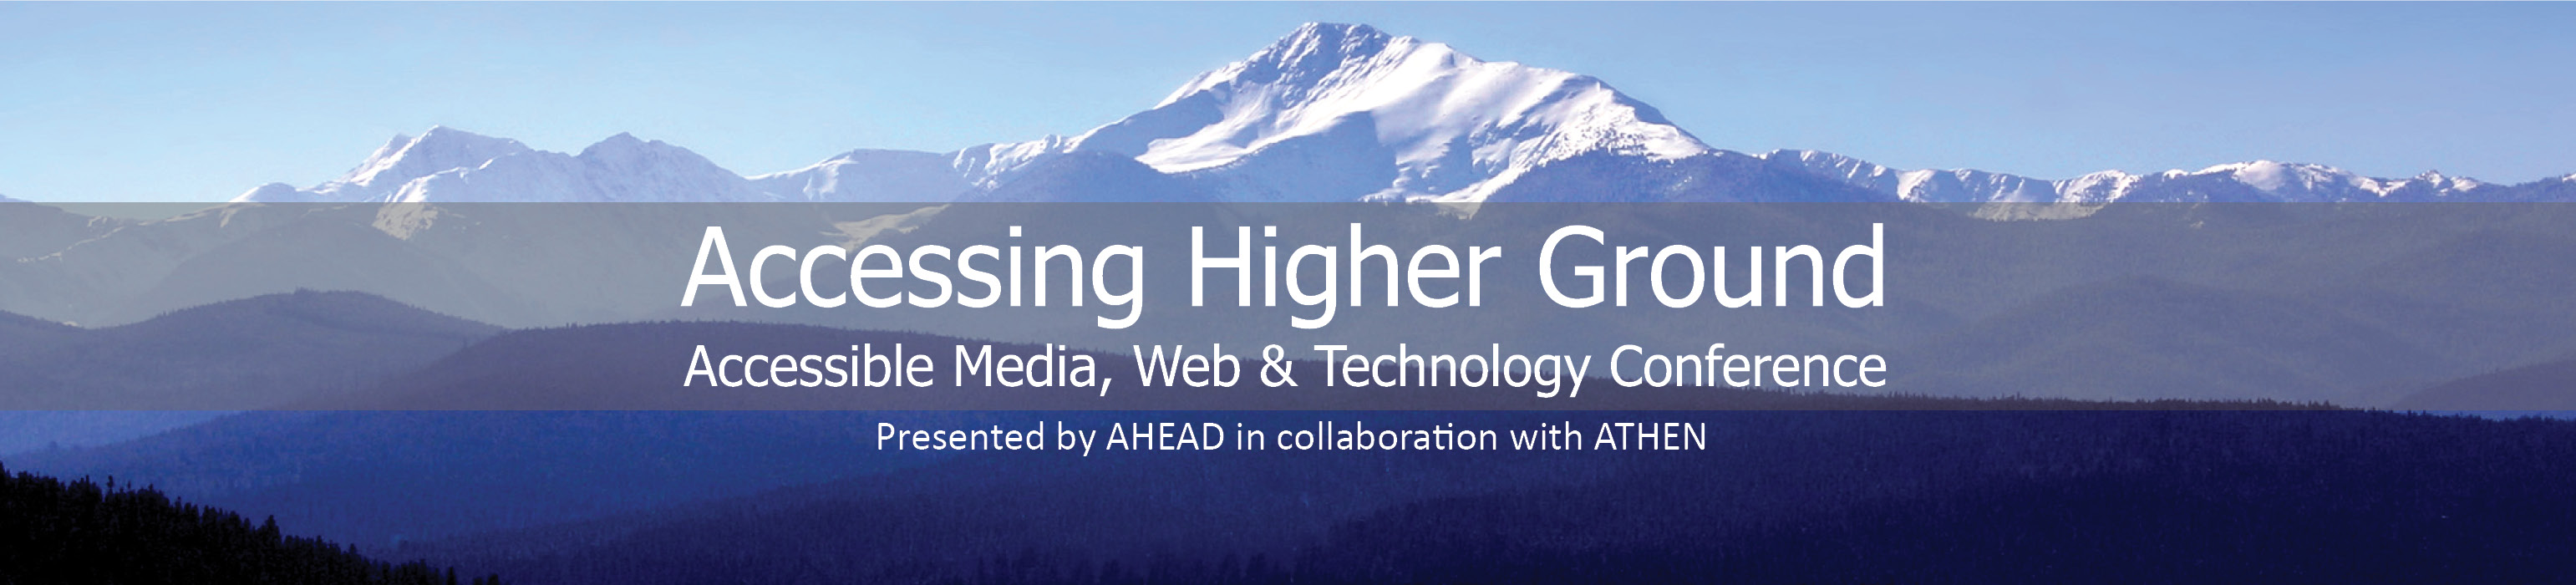 Accessing Higher Ground 2019, November 18 - 22, 2019, Westminster, CO